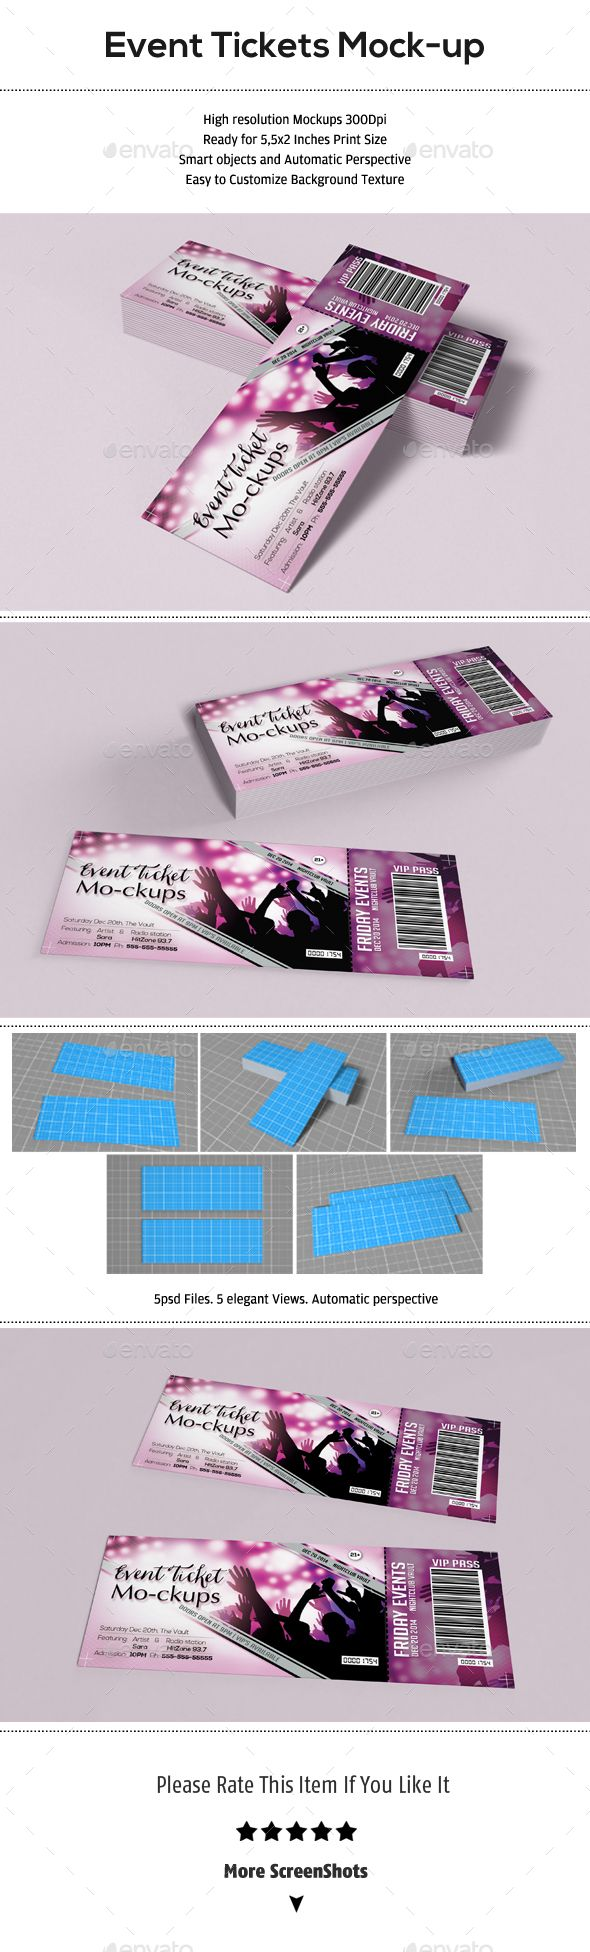 Event Tickets Mock Up  How To Make Tickets For An Event Free